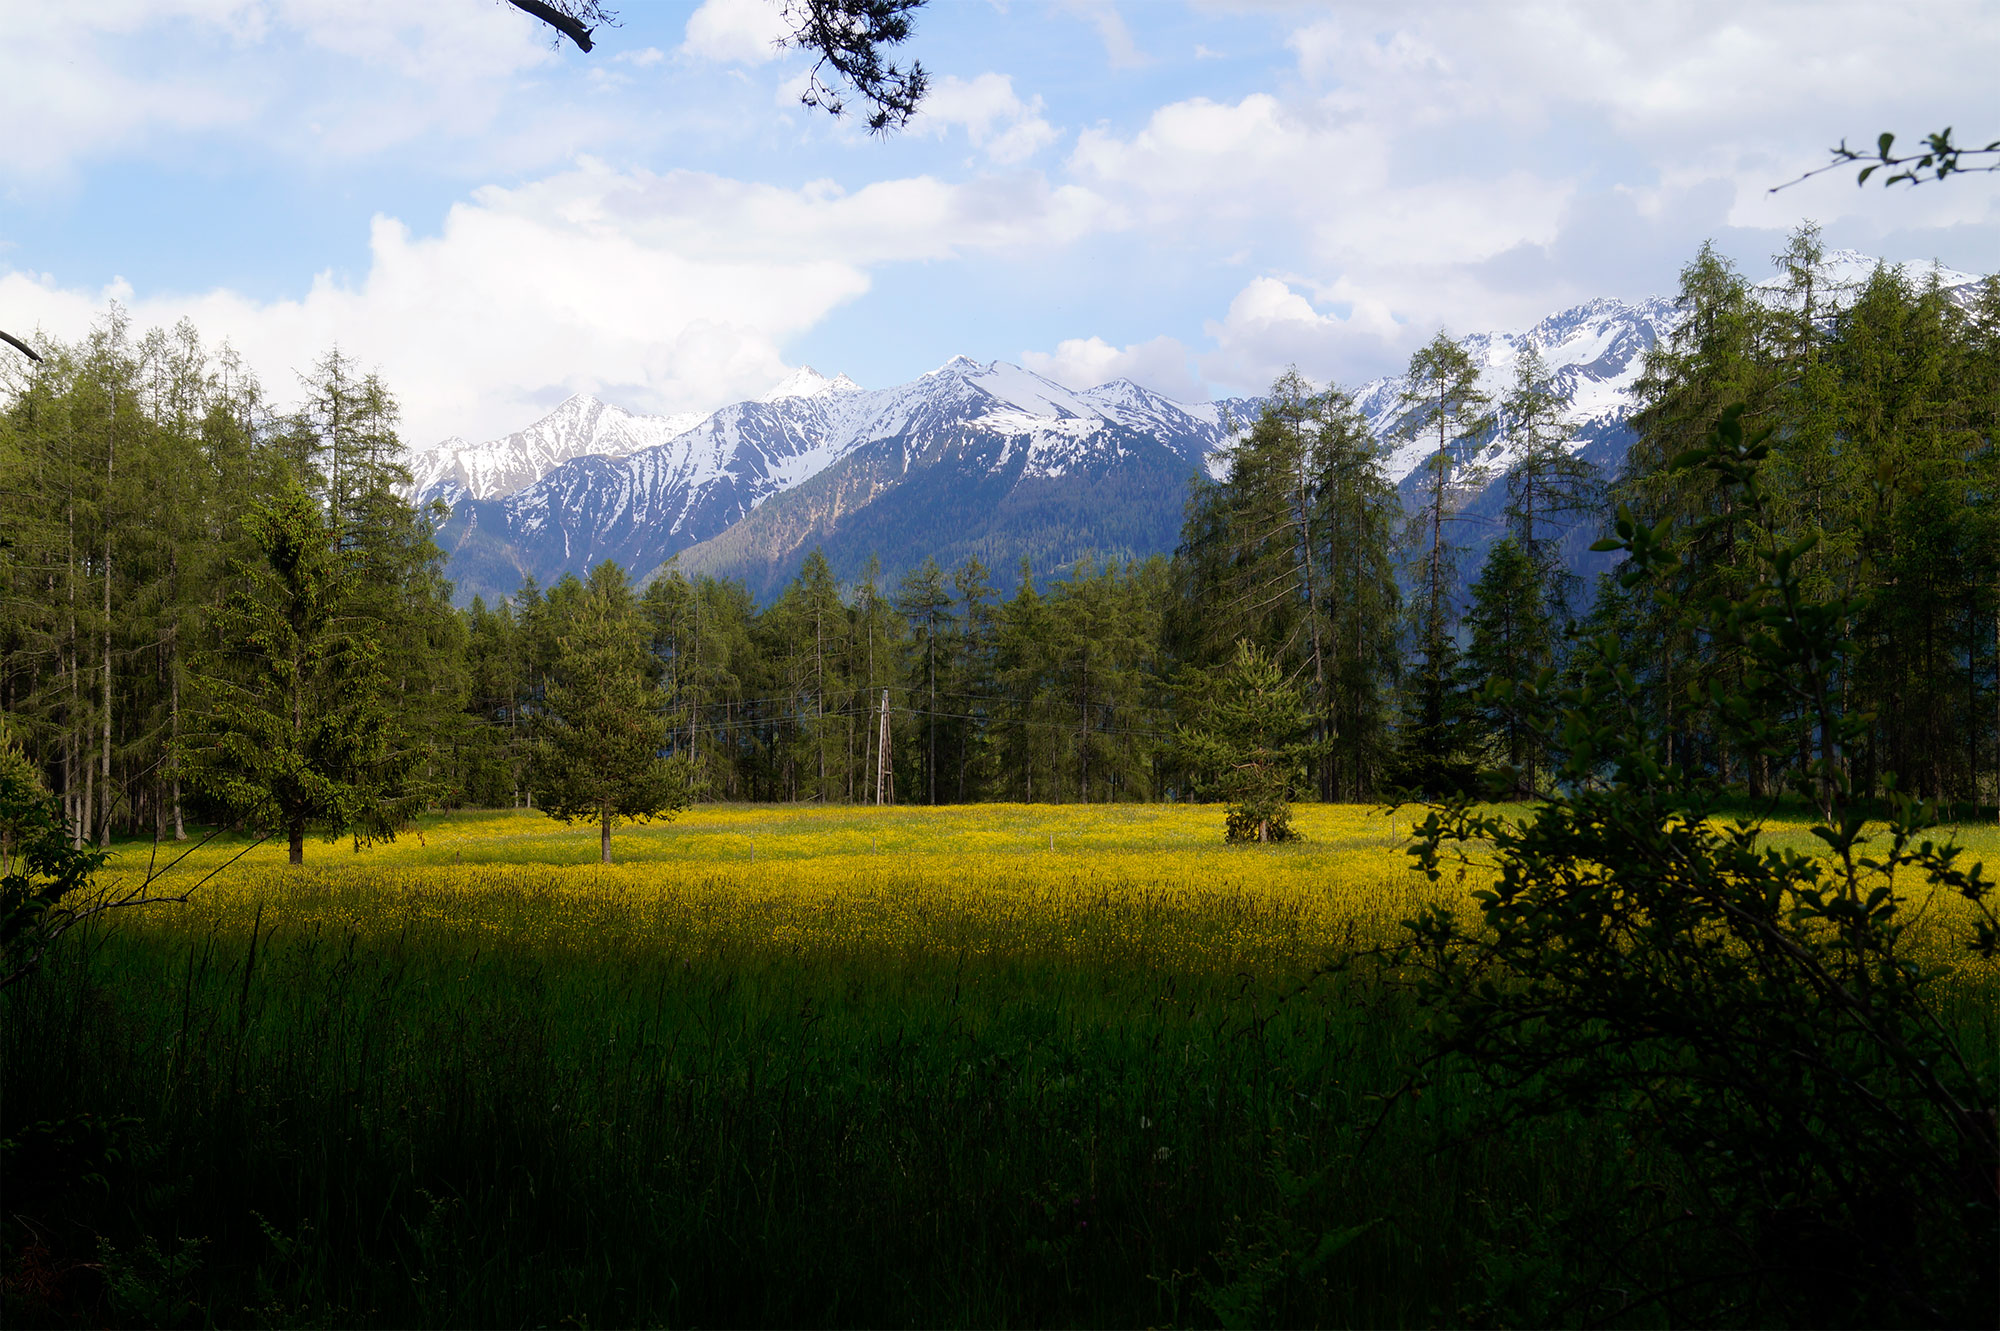 Live consciously today so that future generations can also experience the beauty of Tyrol